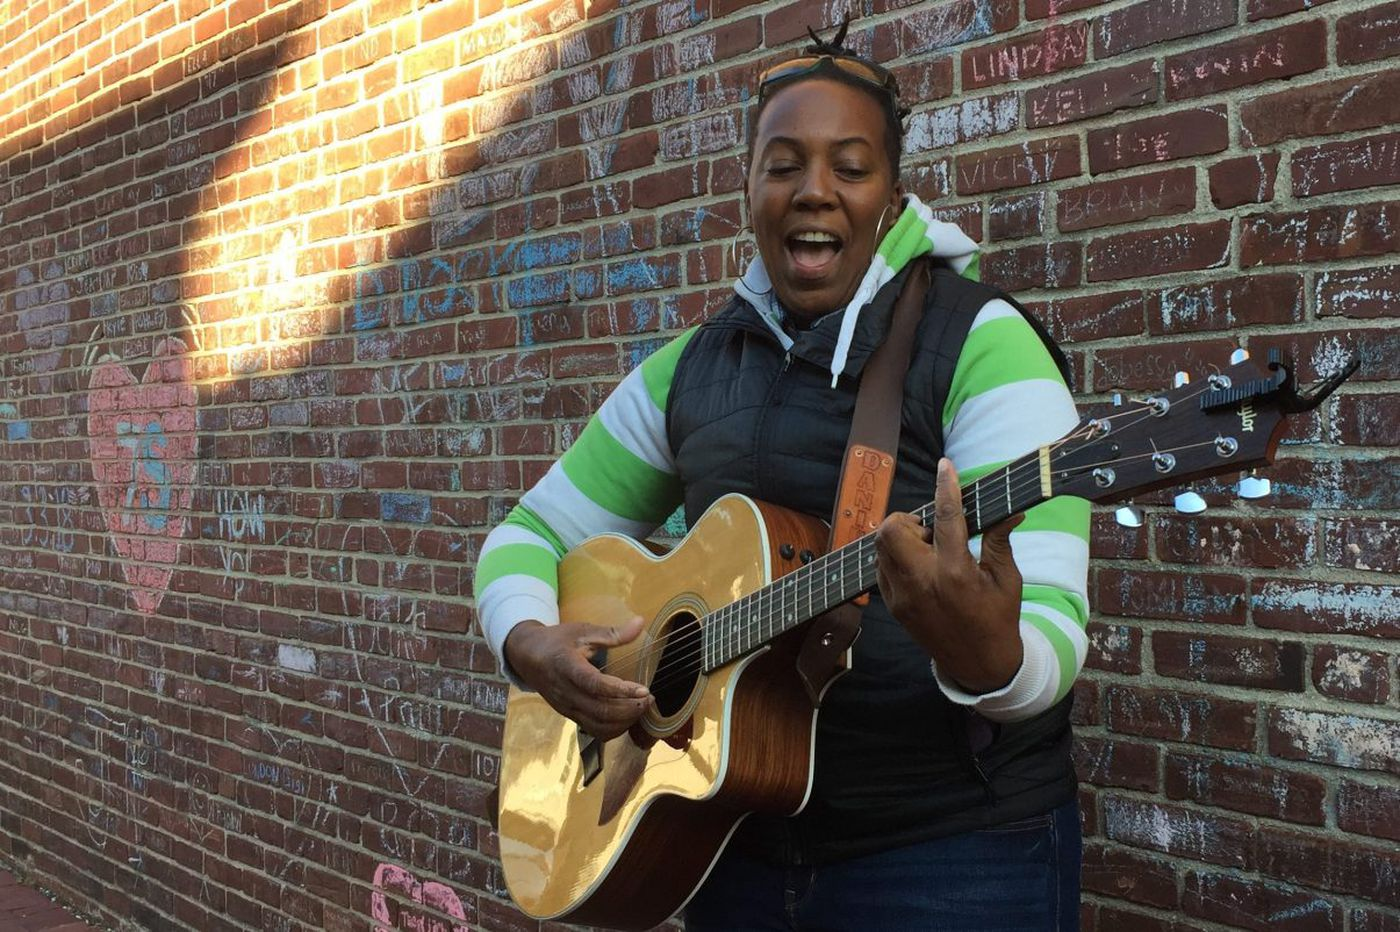 Singer with rare eye disease runs Philly co-op music studios | We the People